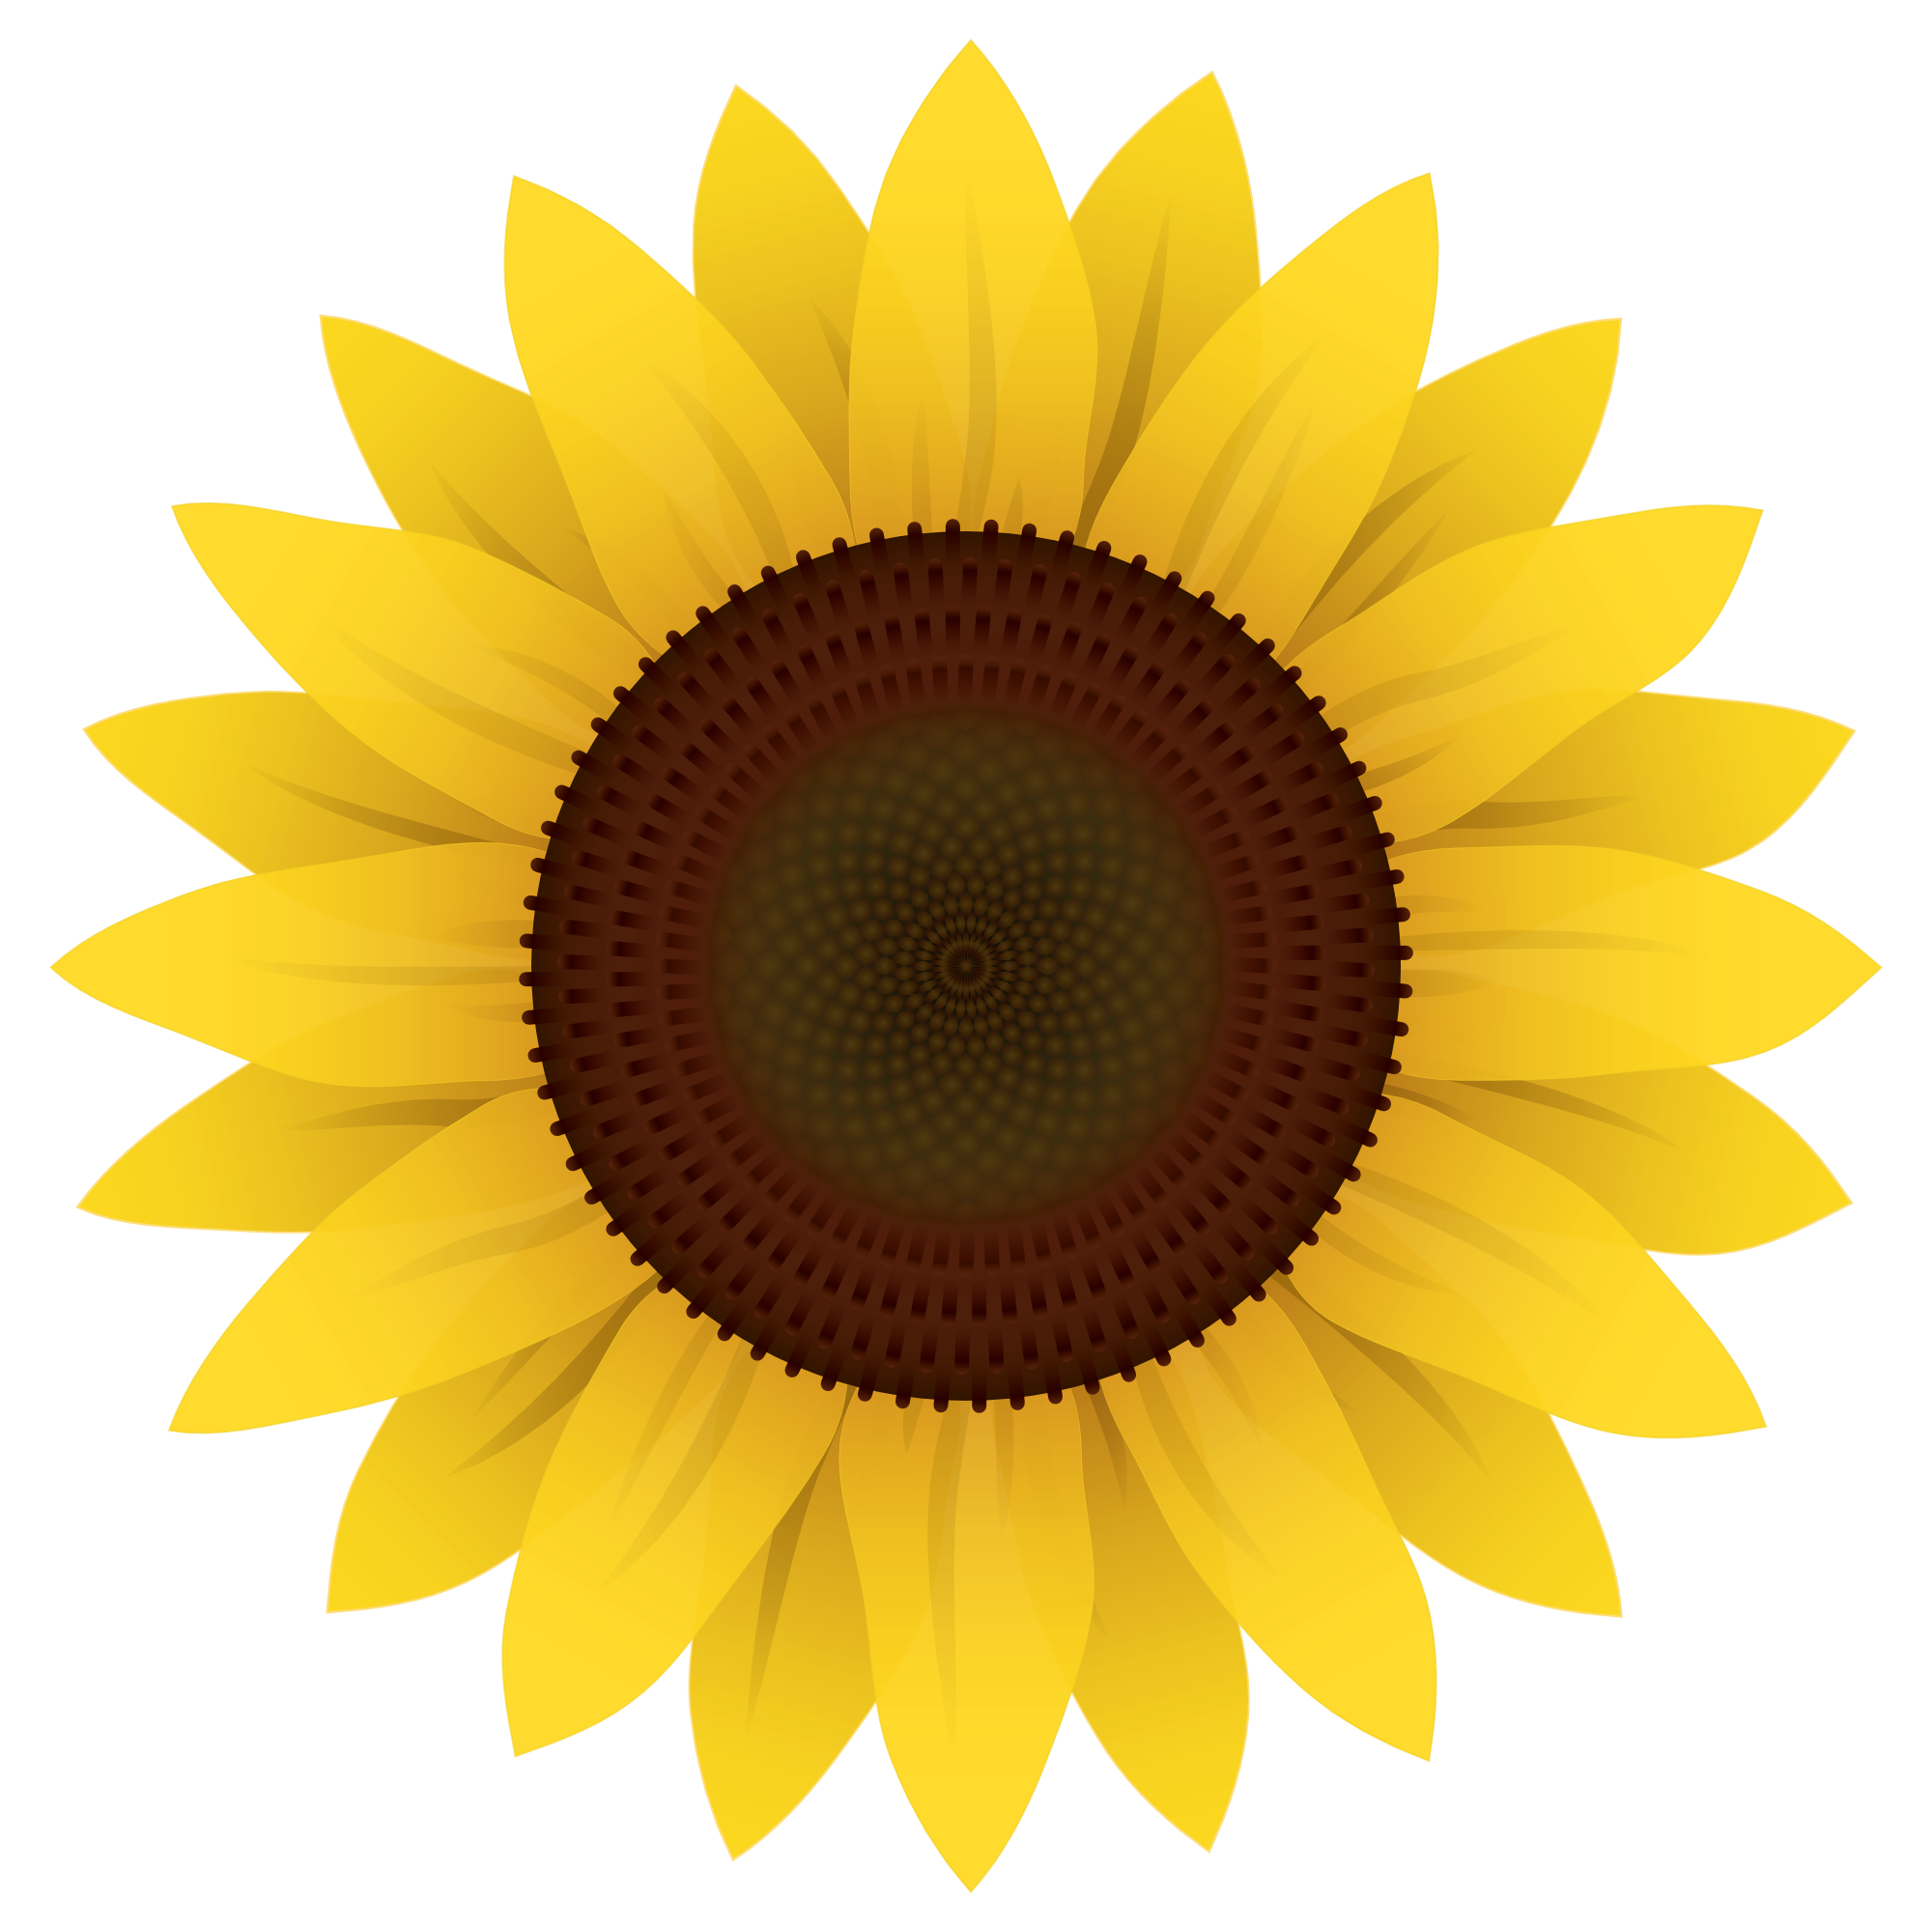 sunflower vector png image purepng free transparent